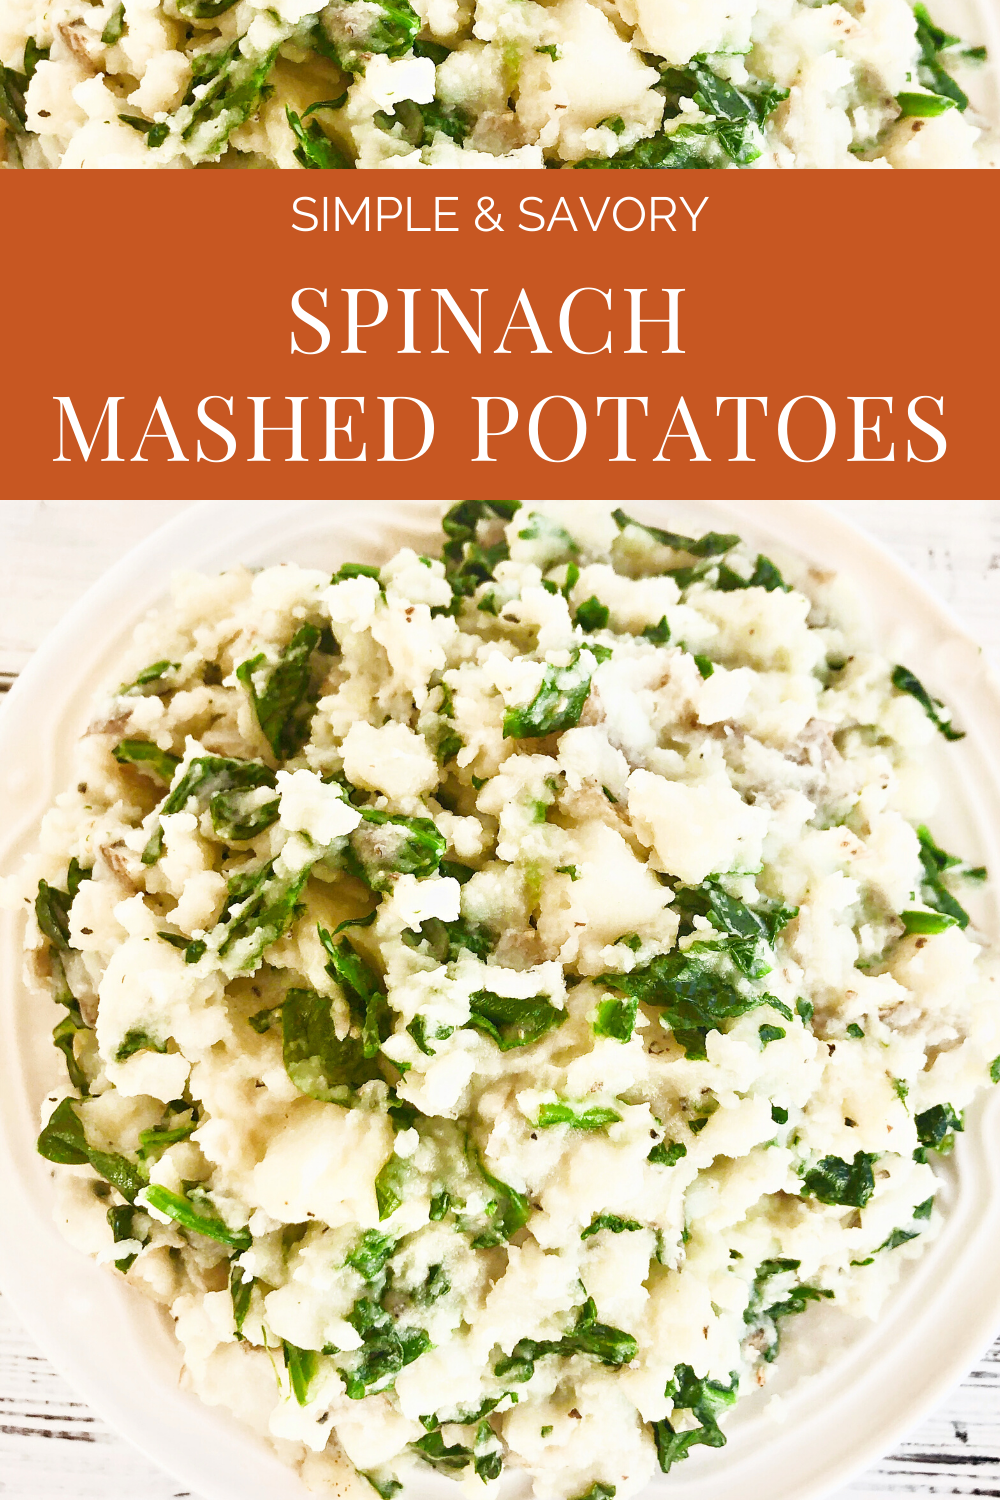 Spinach Mashed Potatoes - Fresh spinach sauteed with garlic with creamy mashed potatoes, butter, and seasonings. This hearty and healthy side dish is ready to serve in about 20 minutes. via @thiswifecooks